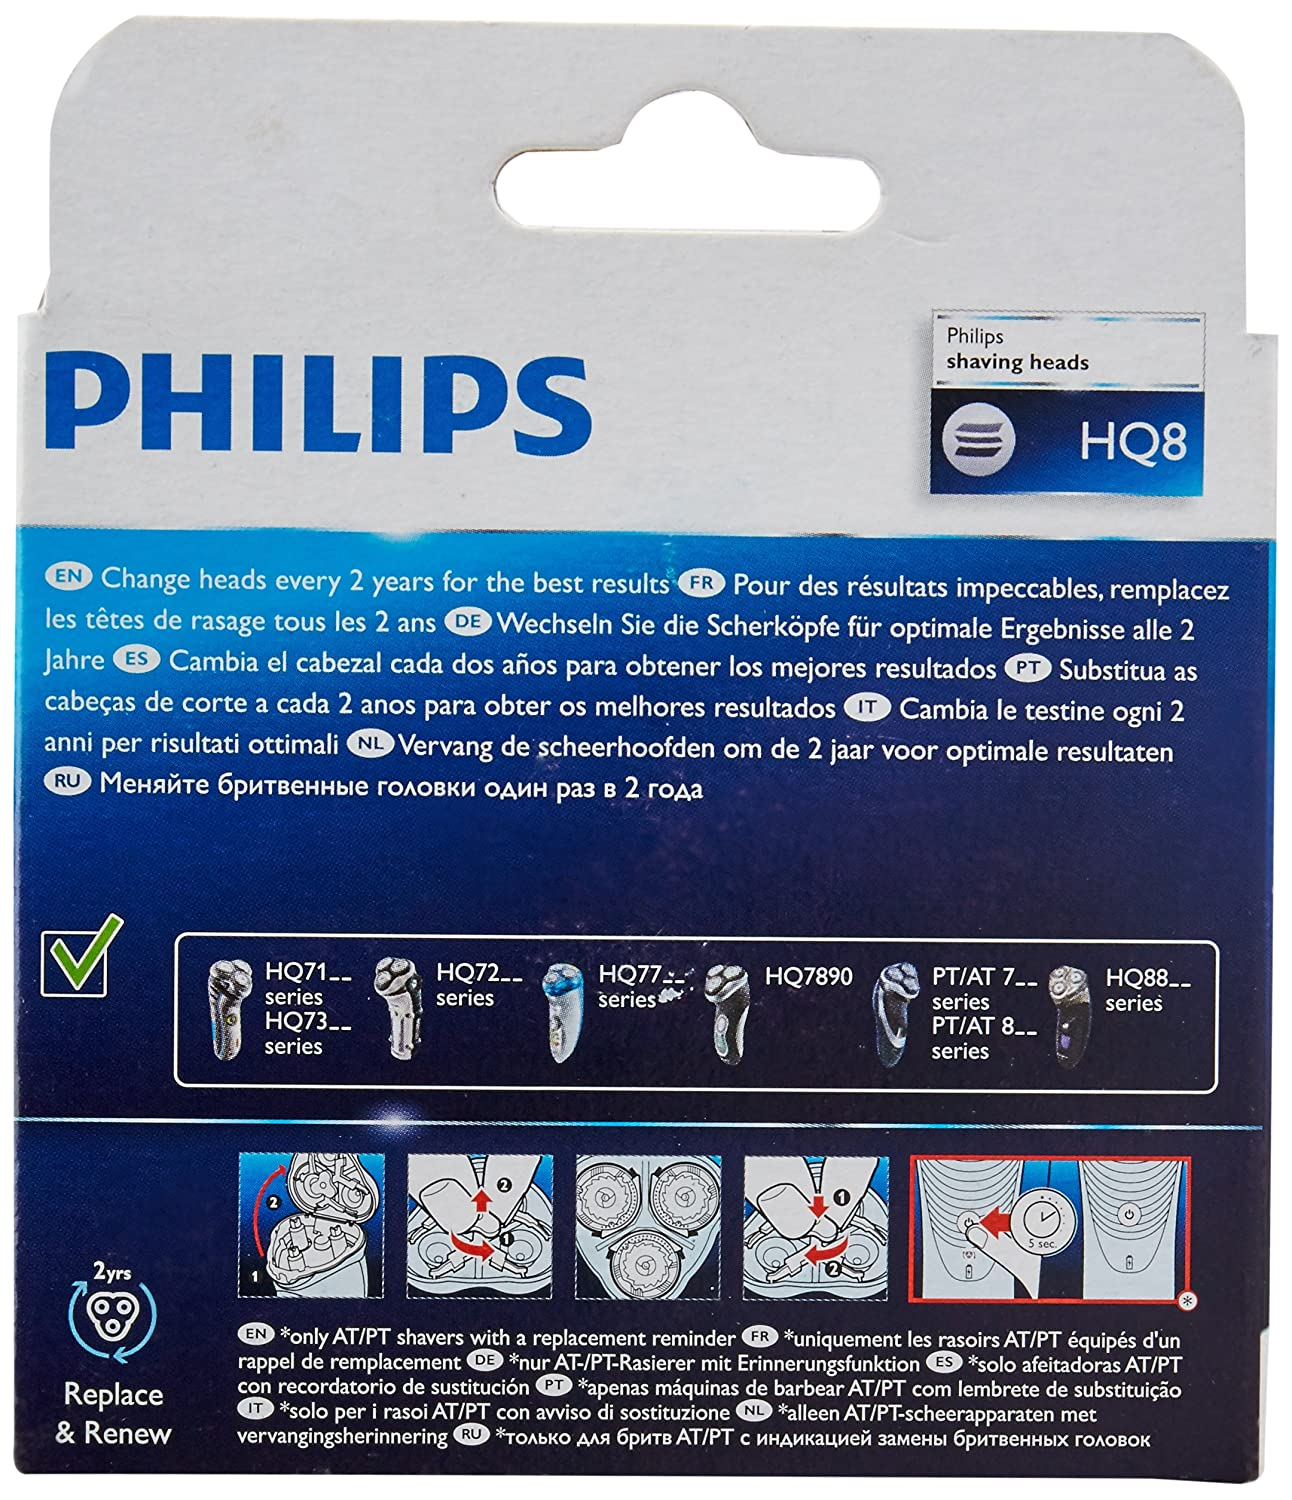 Philips Shaver Head HQ8 50 - DualPrecision  Amazon.co.uk  Health   Personal  Care de99867256a2